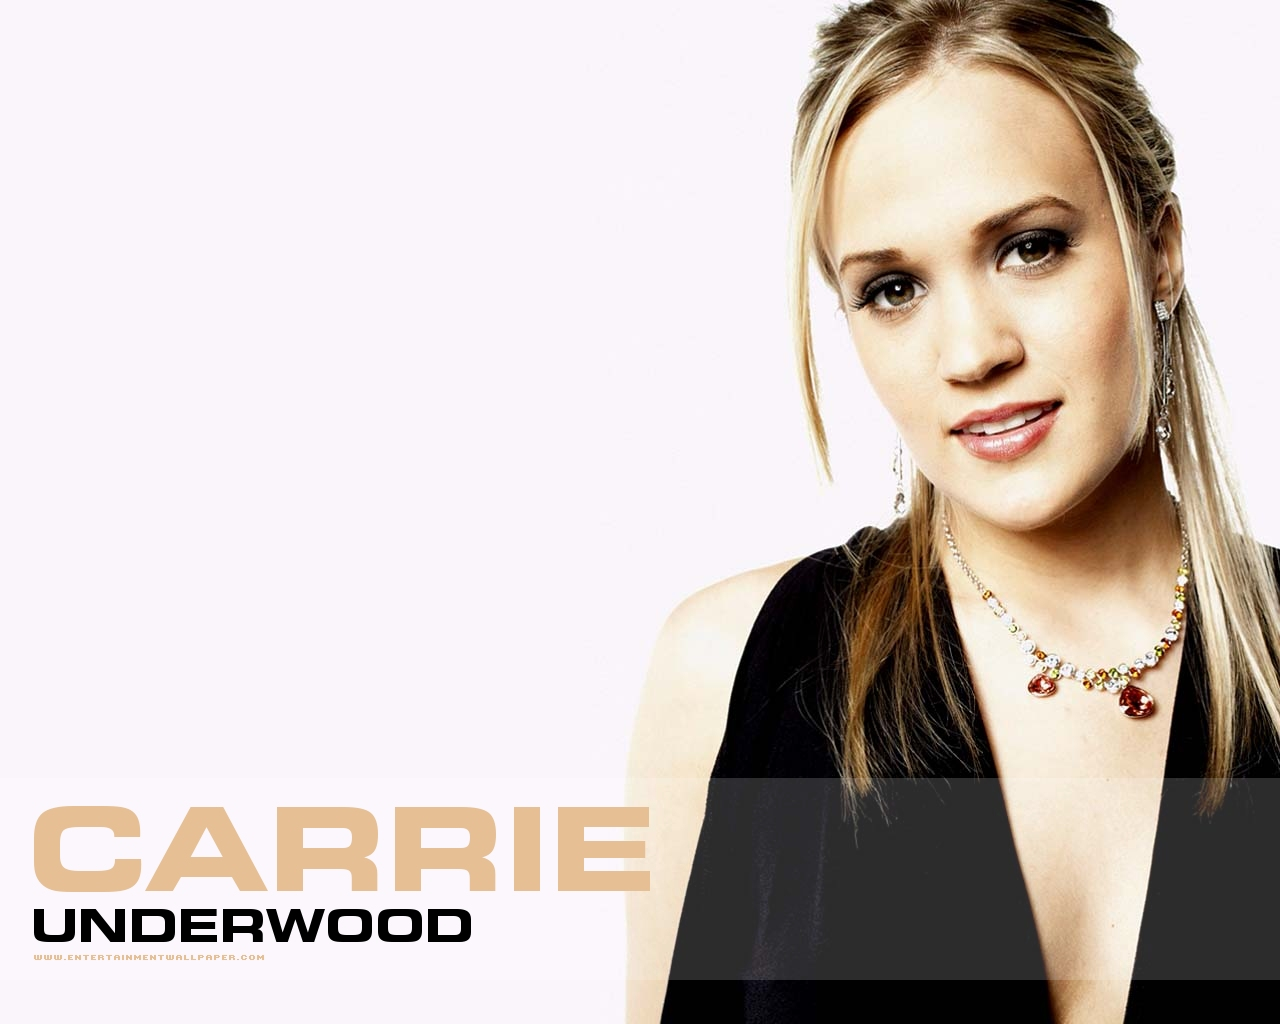 Carrie Underwood - Images